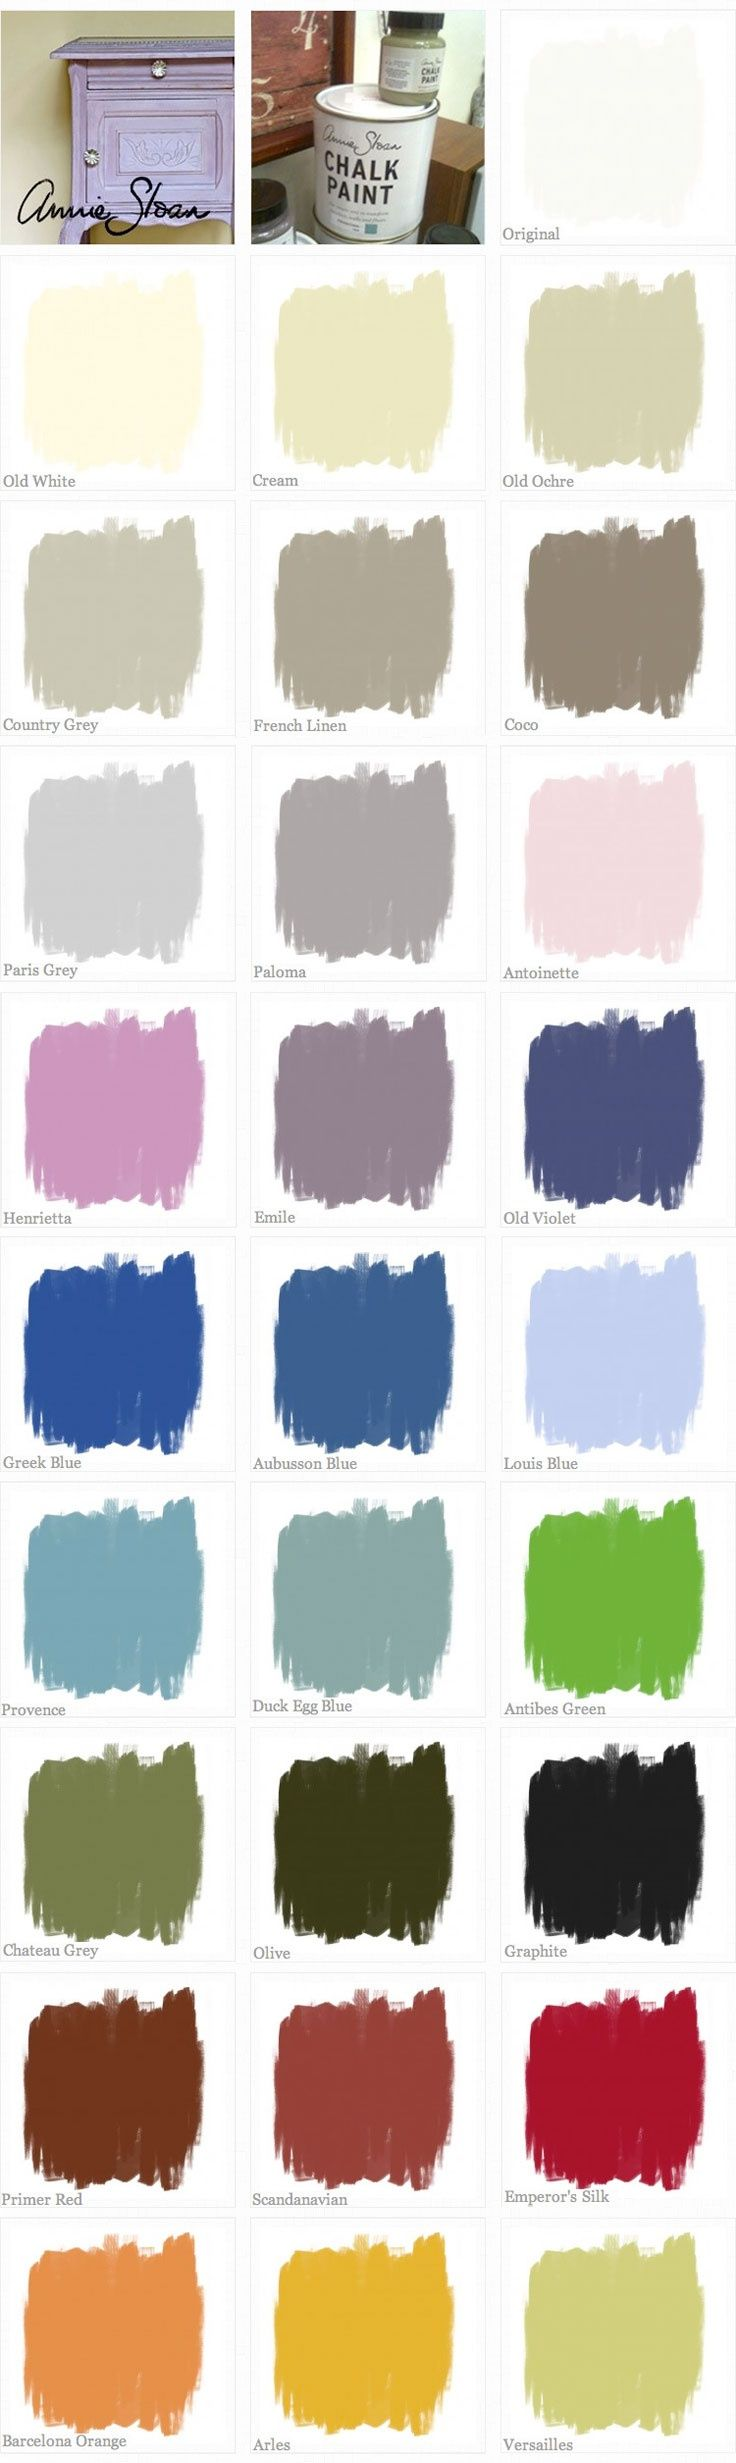 Annie Sloan Wandfarbe Chalk Paint Annie Sloan Chalk Paint Color Swatches Missing